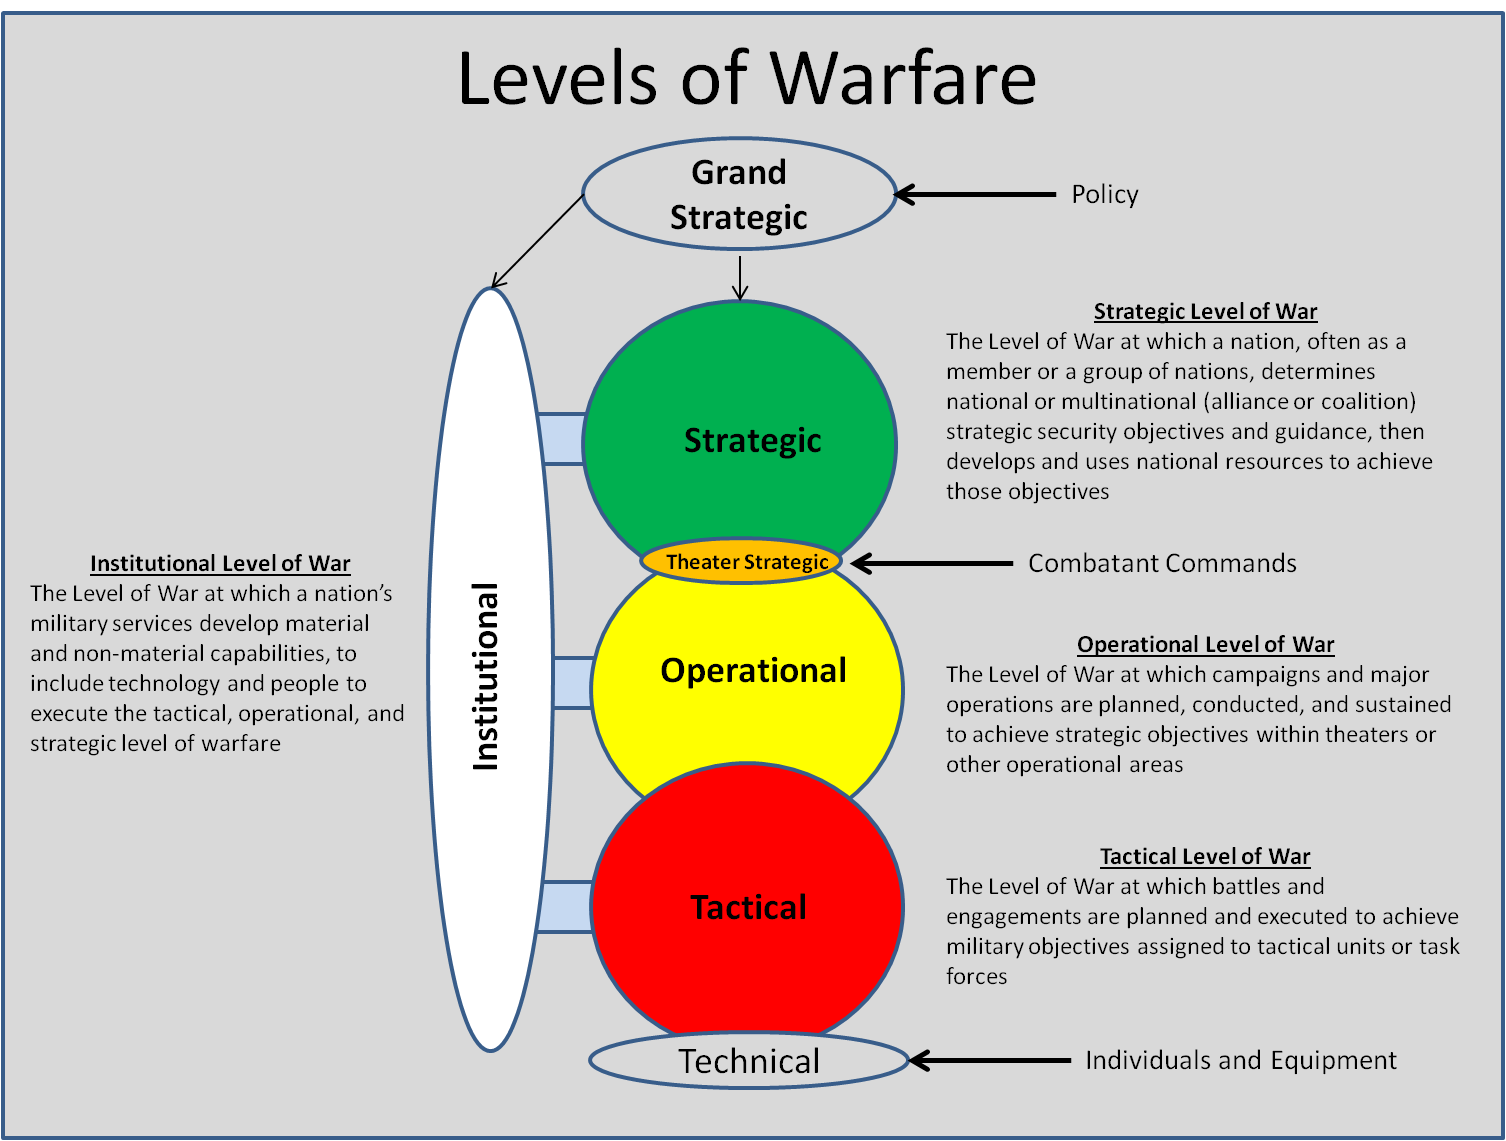 A representation of the links between the technical, tactical, operational, theater strategic, strategic, grand strategic, and institutional levels of war. (Daniel Sukman)